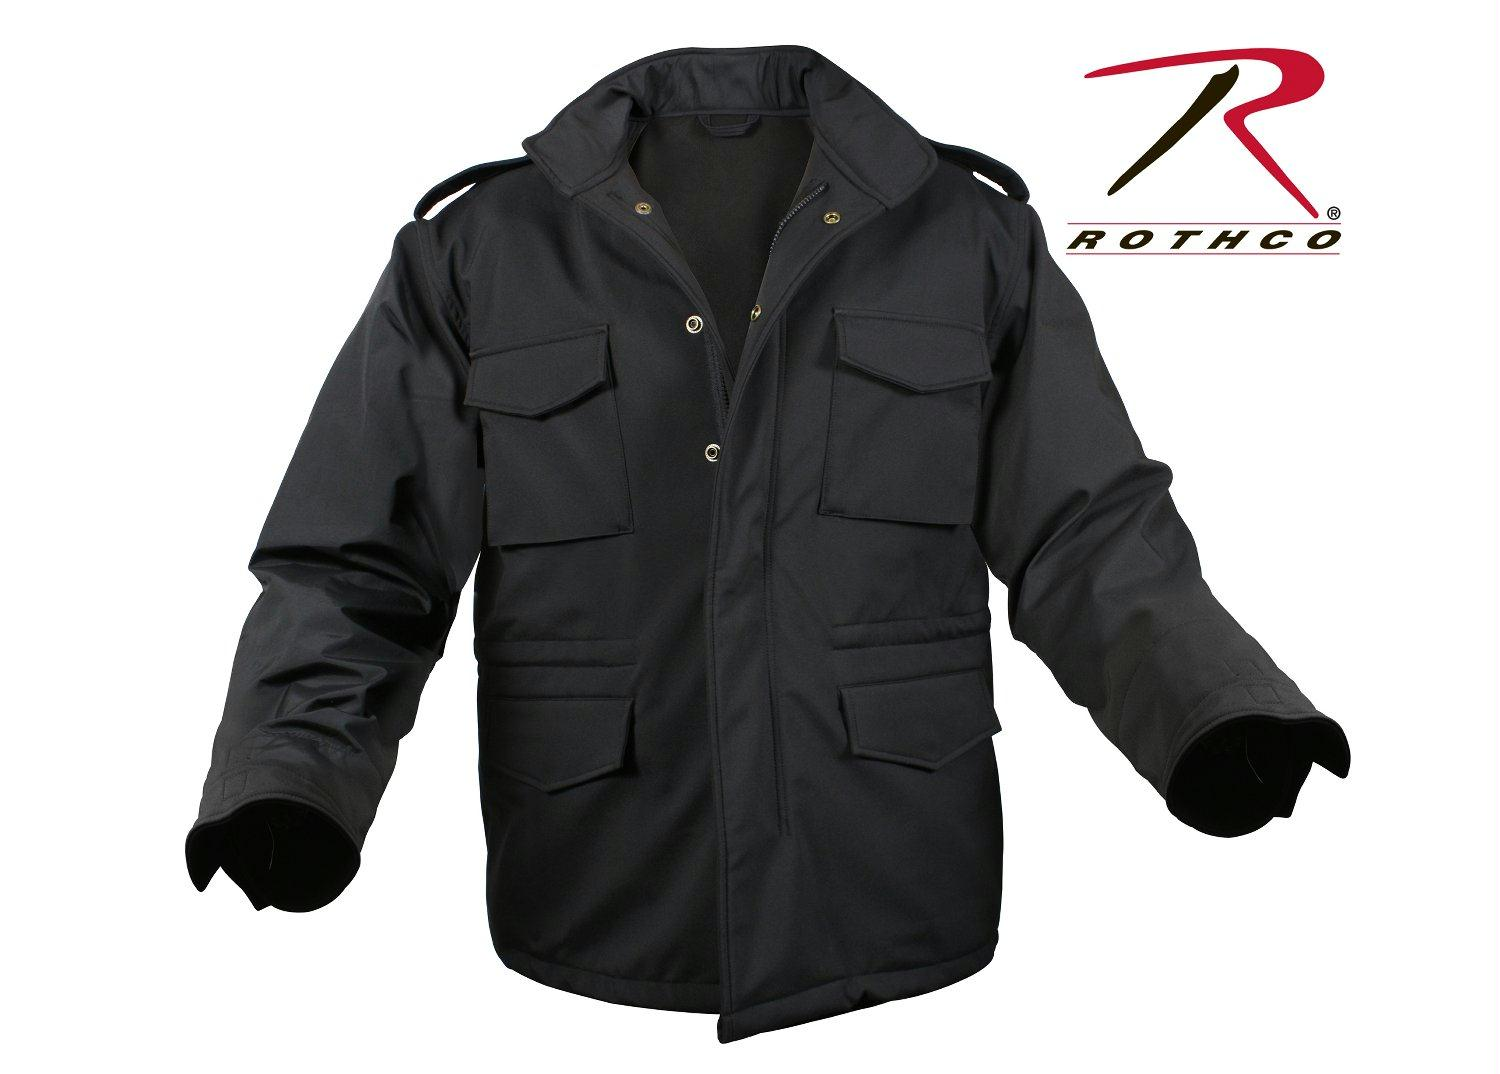 Rothco Soft Shell Tactical M-65 Field Jacket - Black / S